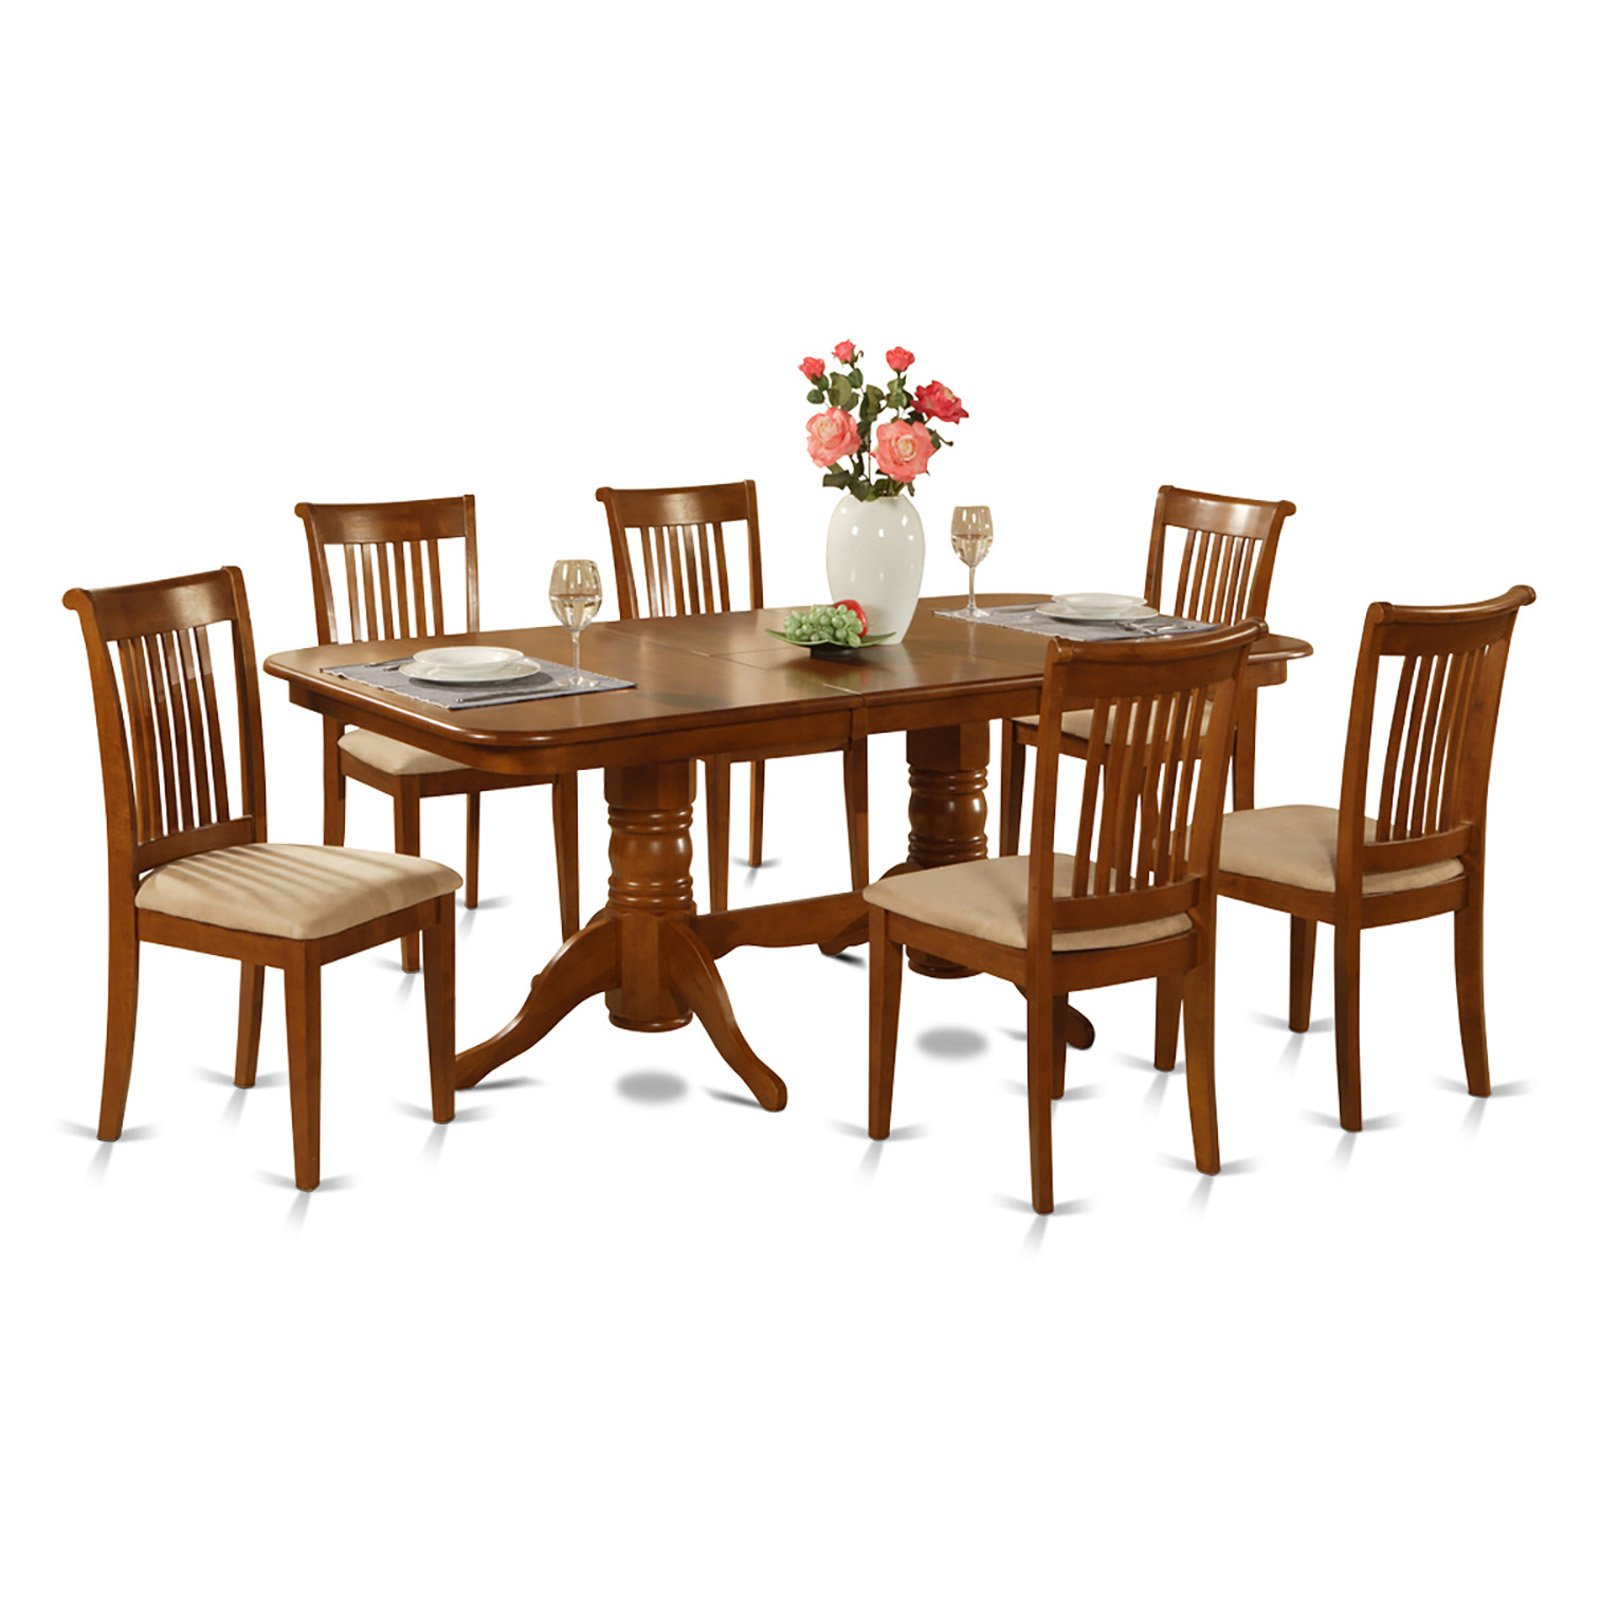 East West Furniture Kenley 7 Piece Dining Table Set with Portland Chairs